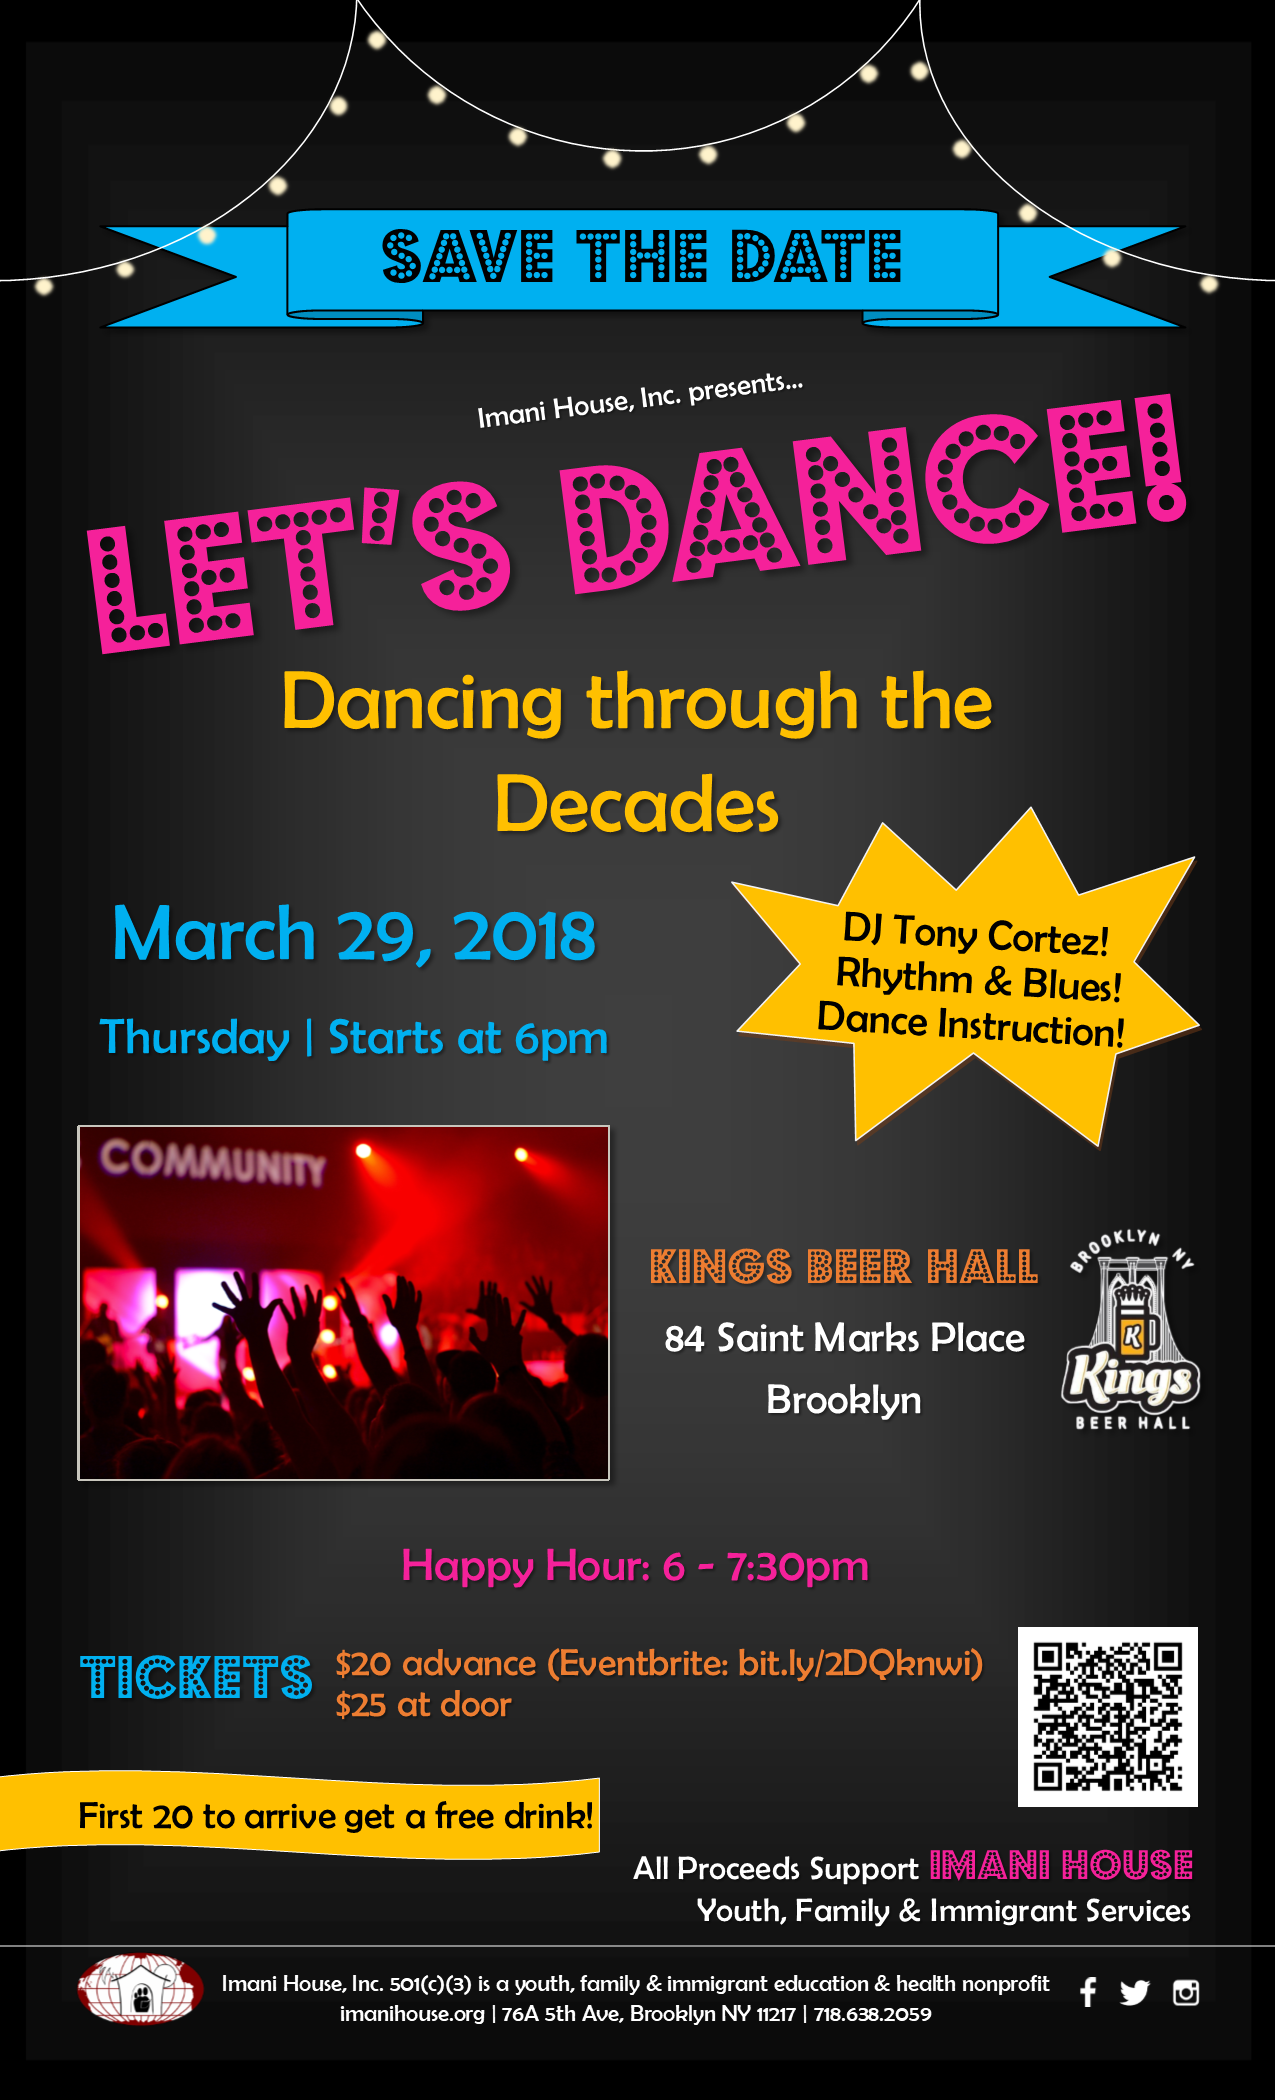 Let's Dance! Save the Date